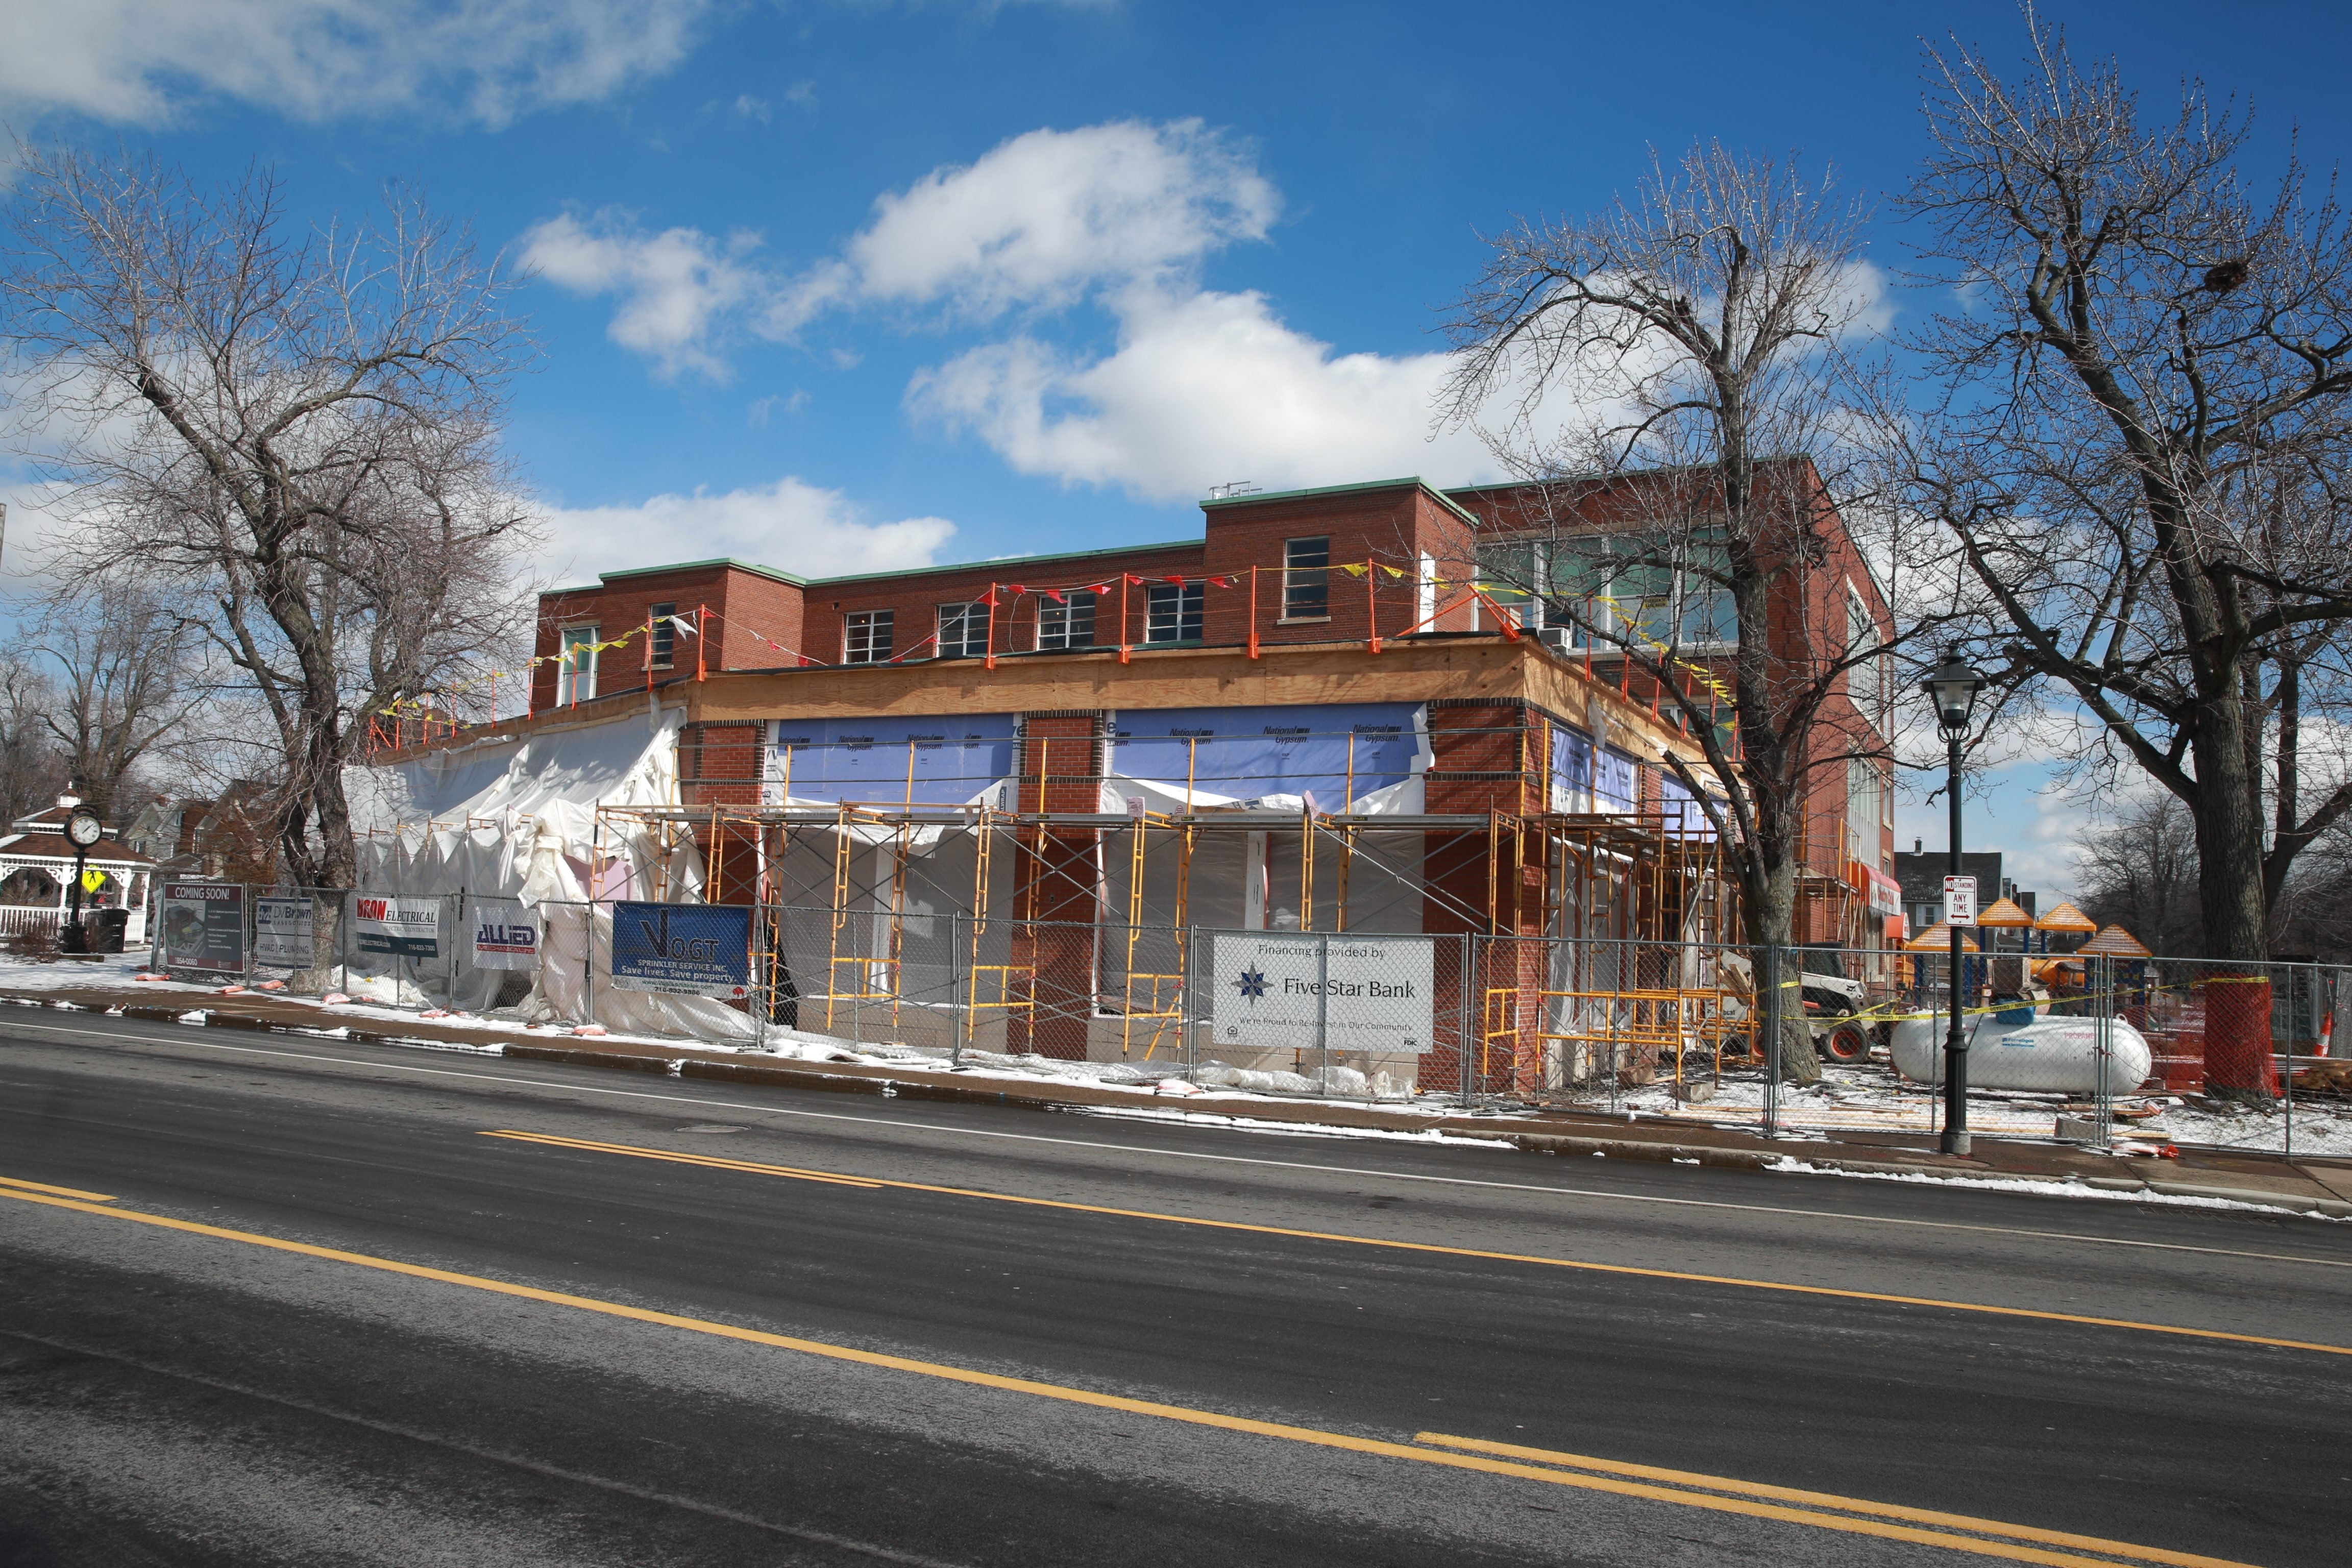 SPoT Coffee is going into the addition being built on the former George Washington Elementary School at 1 Delaware Road, Kenmore. The school is being converted into a mixed-use building including 21 luxury apartments. (John Hickey/Buffalo News)